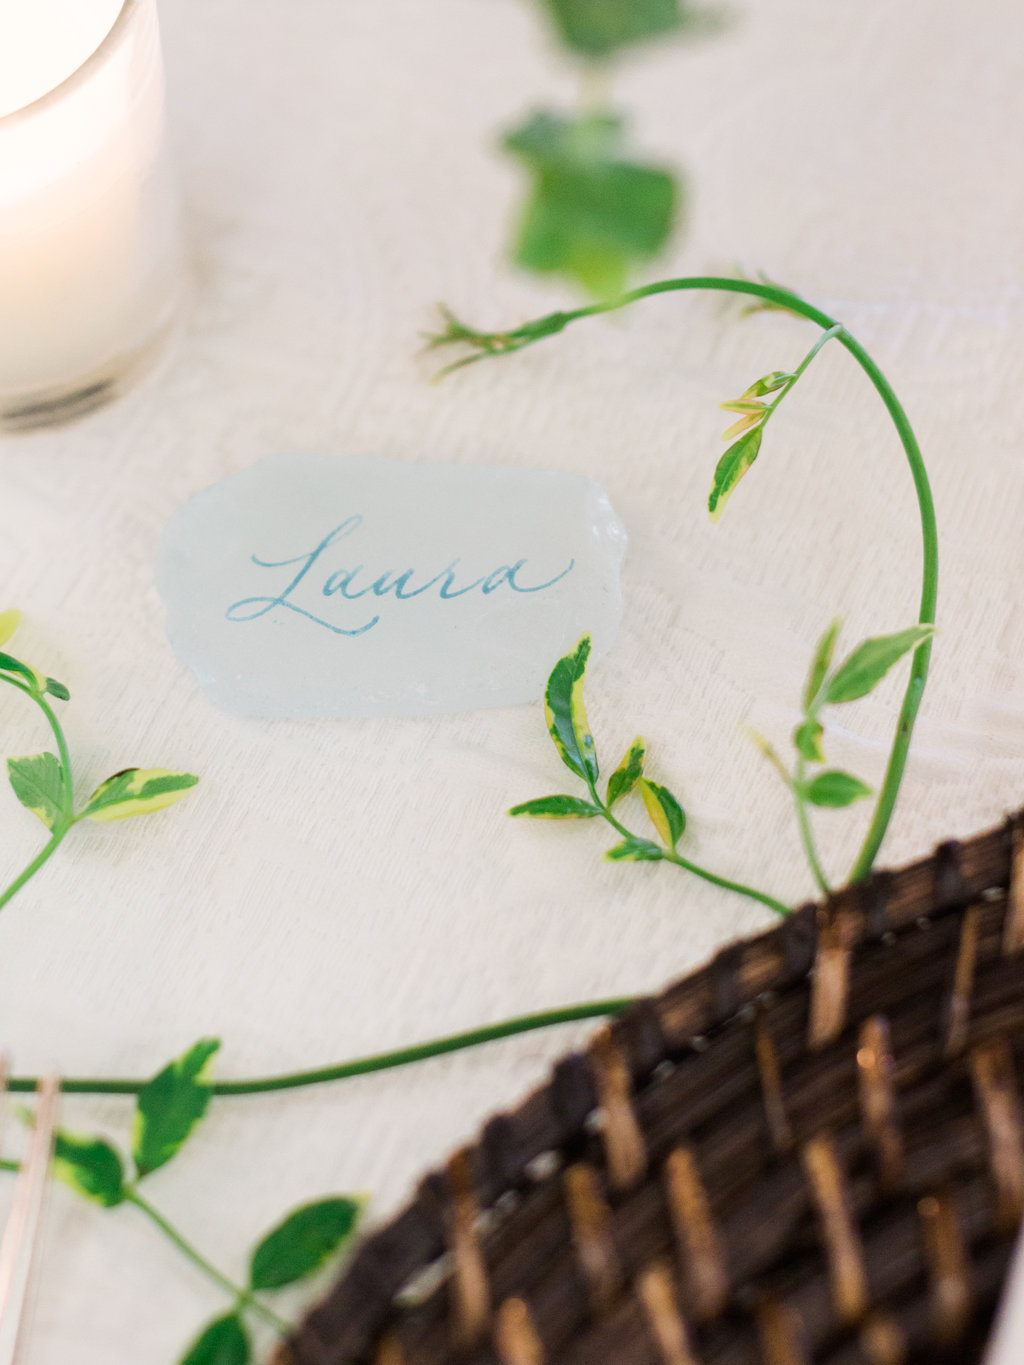 Beach glass place card or escort card with calligraphy.